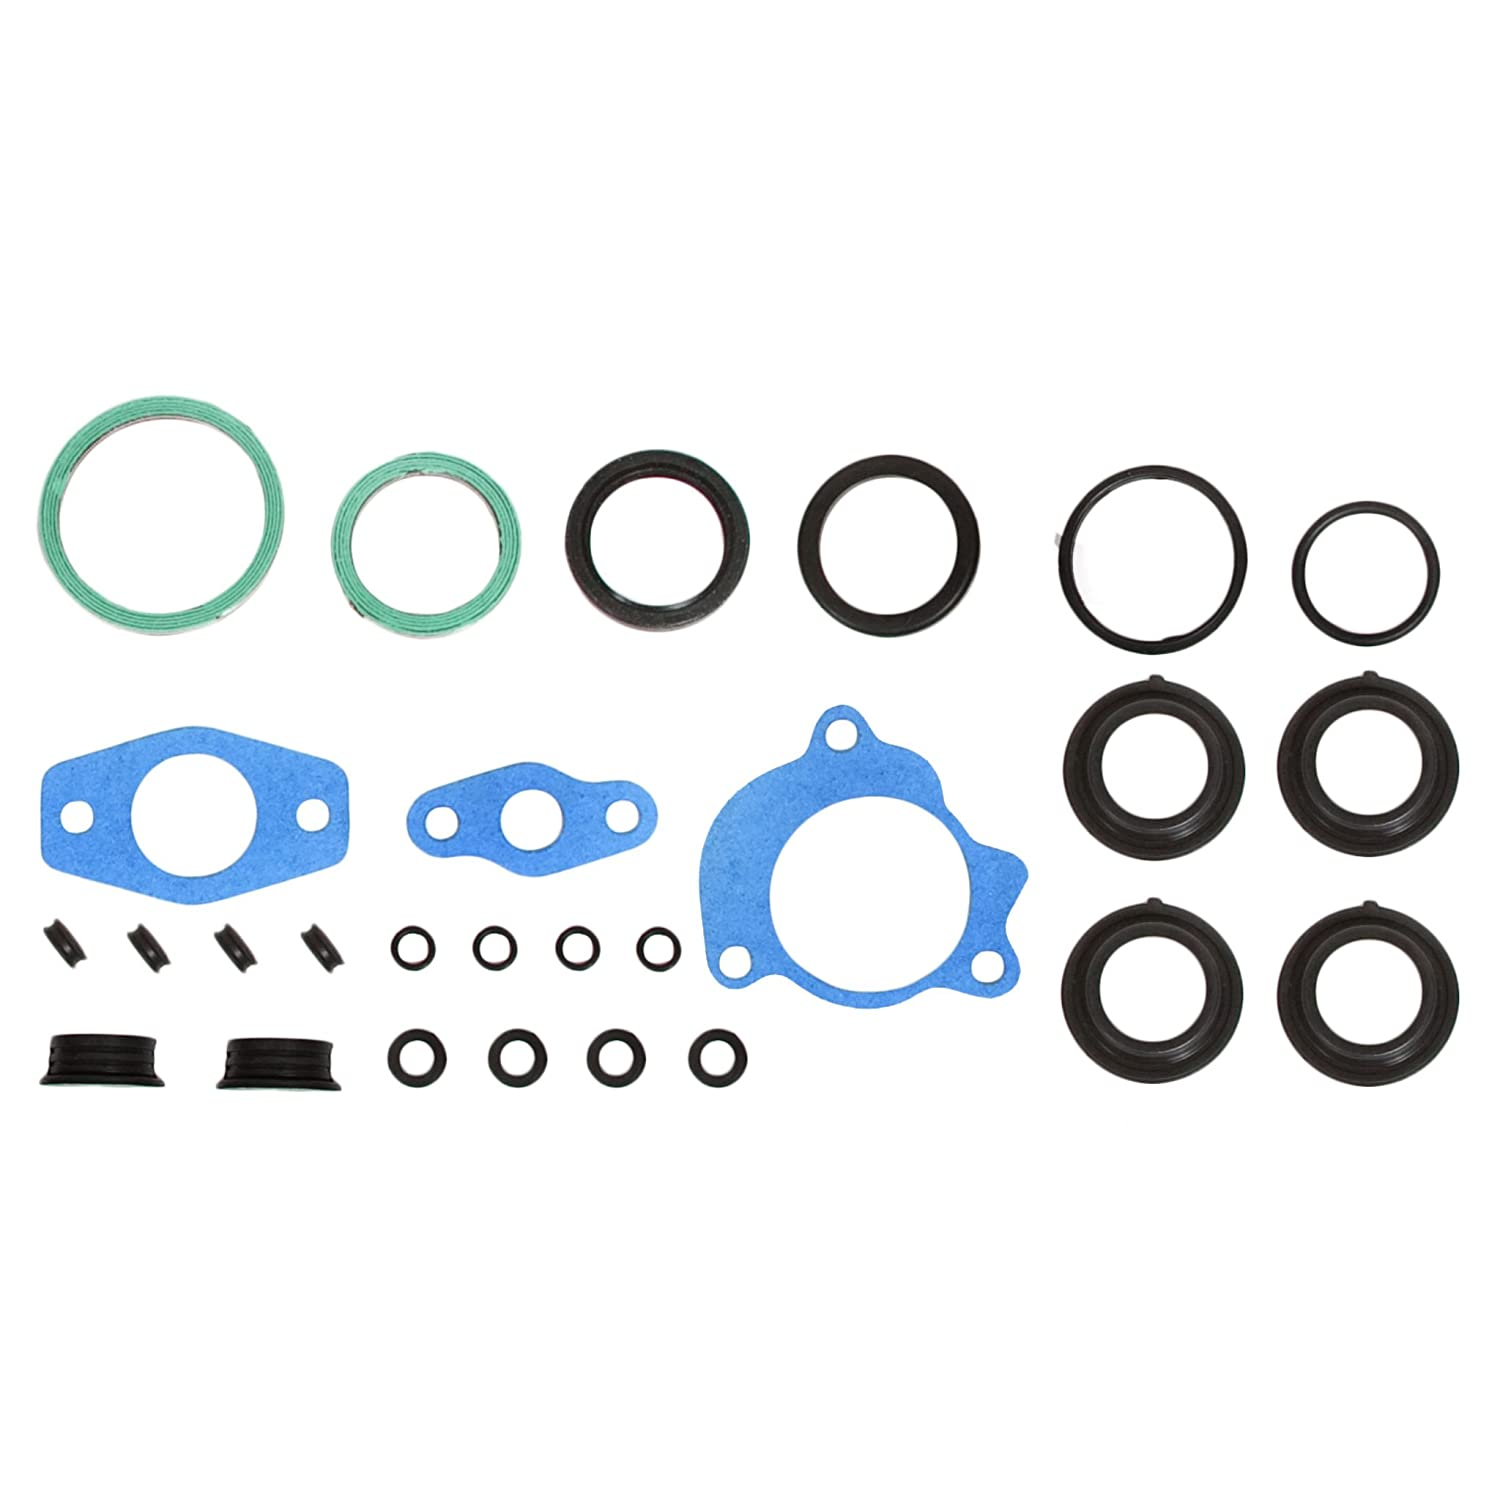 Fits 97-01 Toyota 2.2 DOHC 16V 5SFE Head Gasket Set